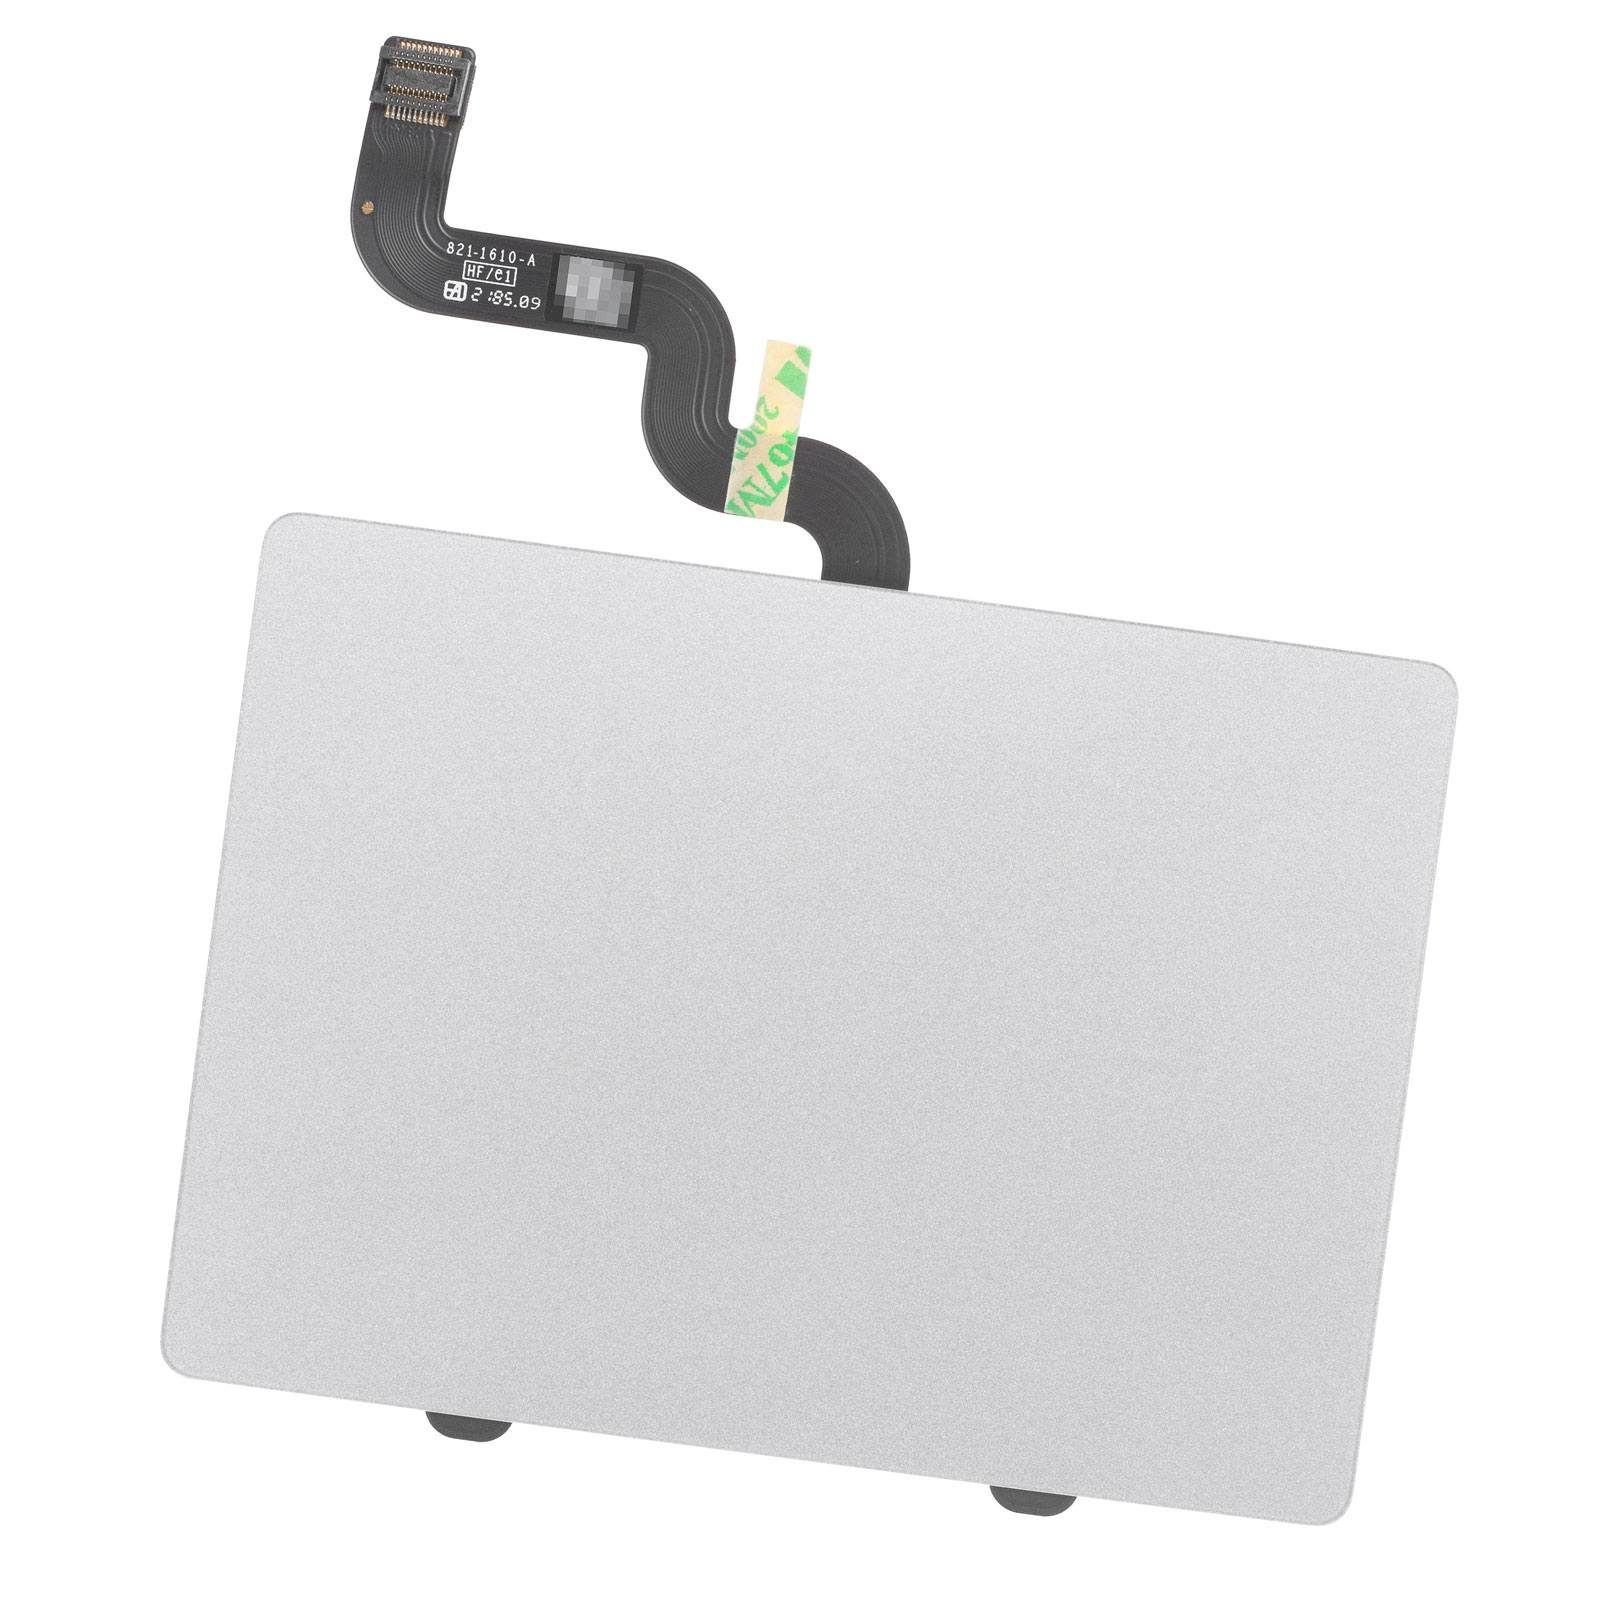 "For MacBook Pro 15 /"" A1286 Touchpad Trackpad Without Cable Mid 2011 2012 2013"